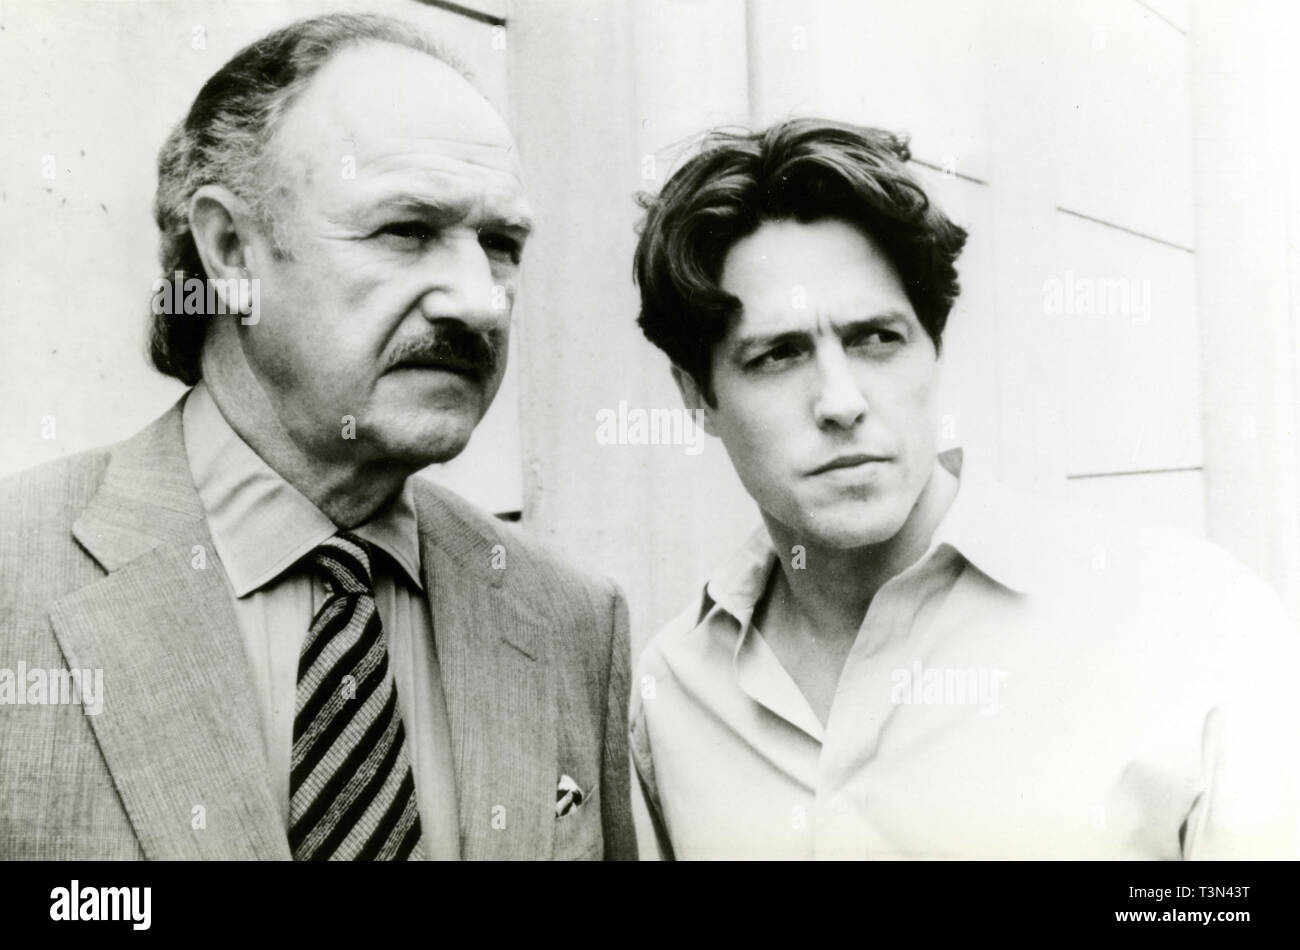 Actors Gene Hackman and Hugh Grant in the movie Extreme Measures, 1990s - Stock Image